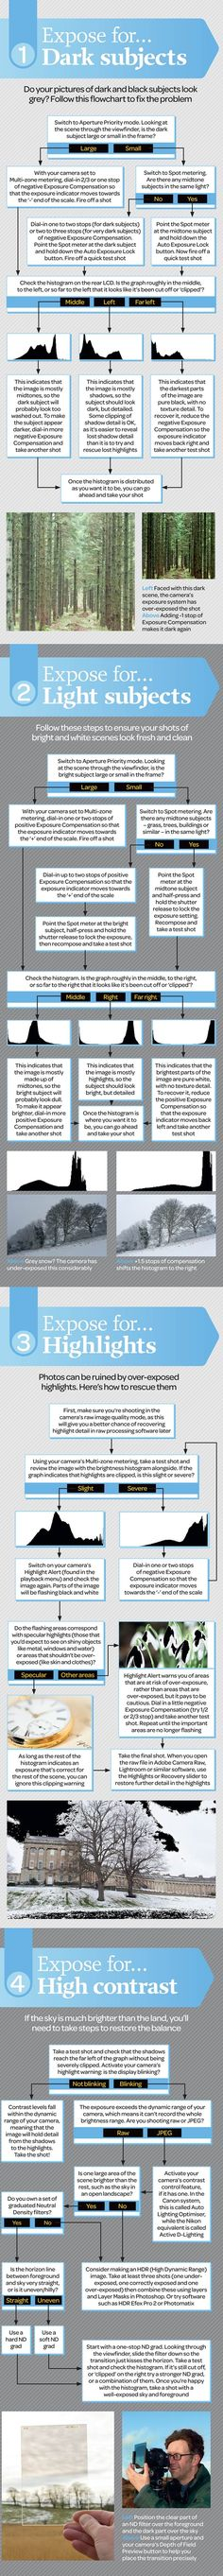 Photography Basics: the No. 1 cheat sheet for metering and exposure